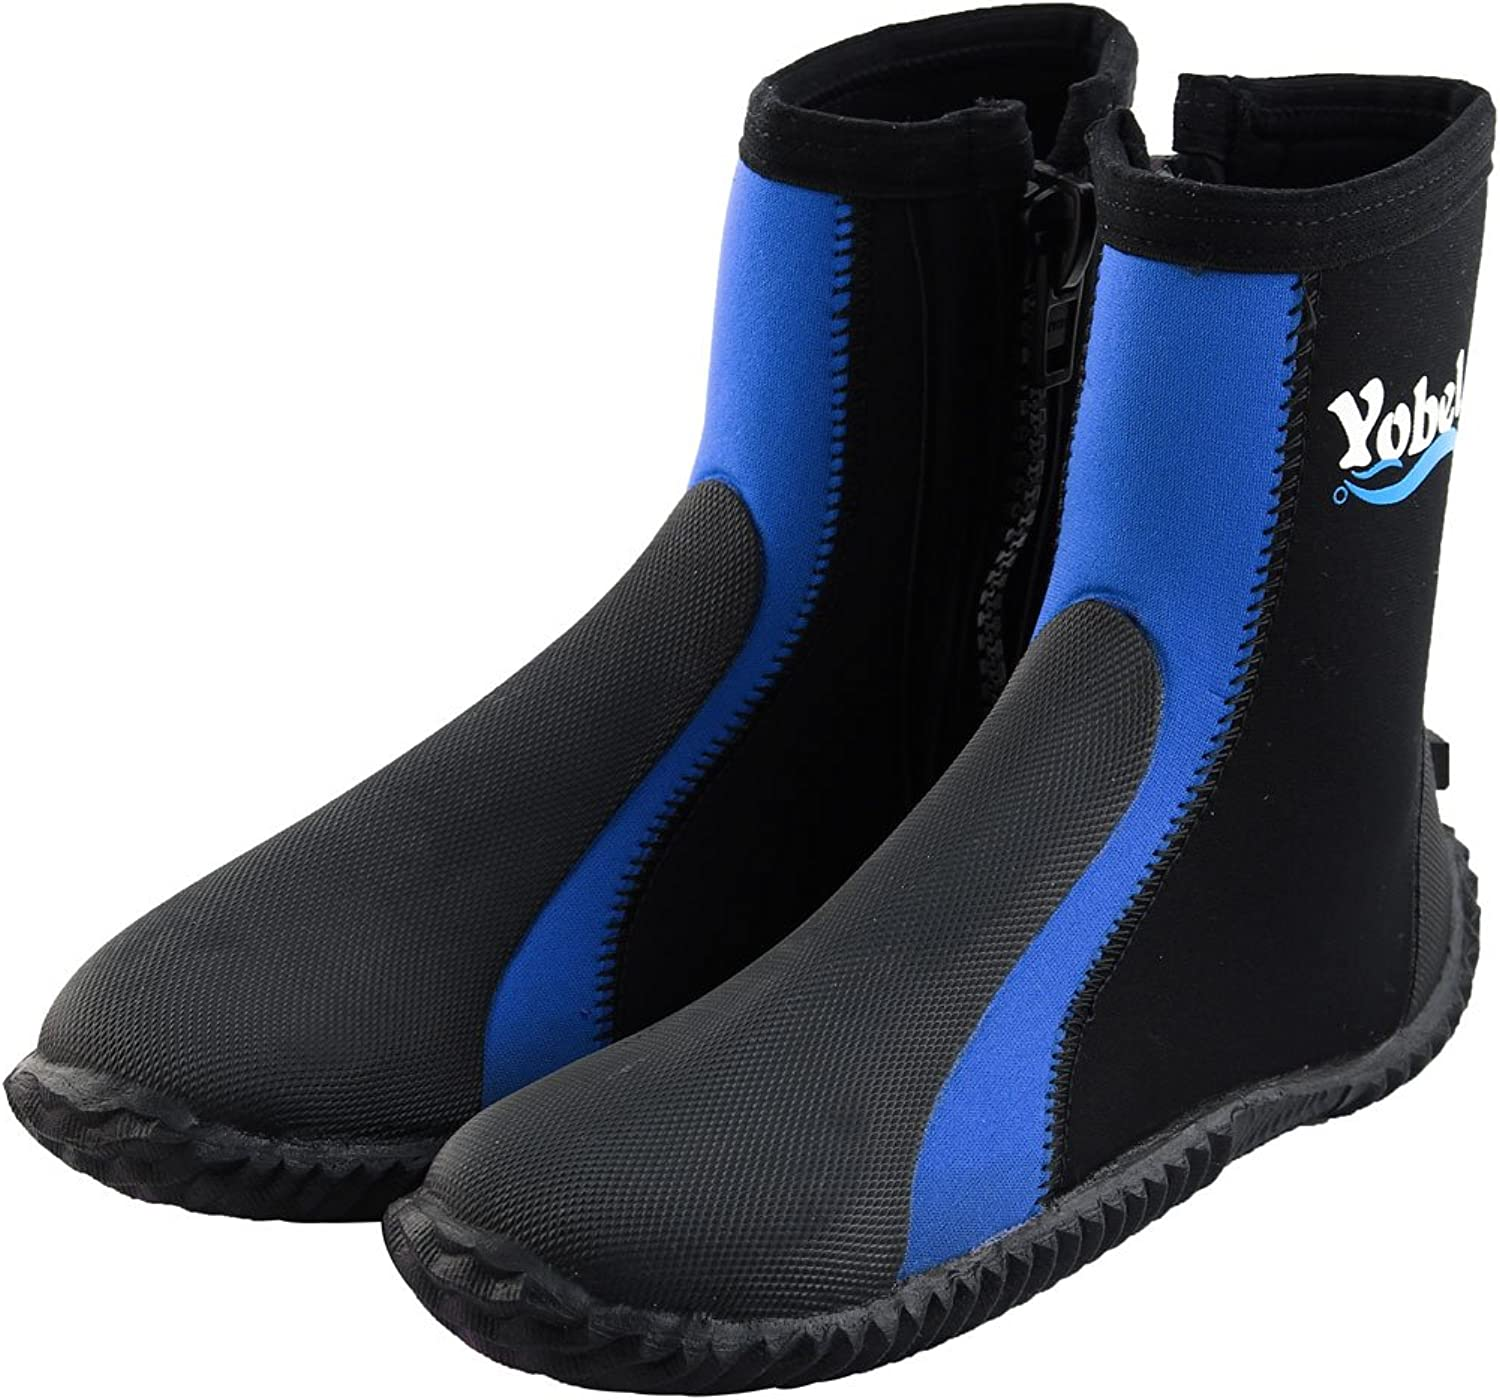 Uxcell Outdoor Diving Surfing Beach Winter Swimming AntiSlip Wetsuits Water shoes Boots Pair